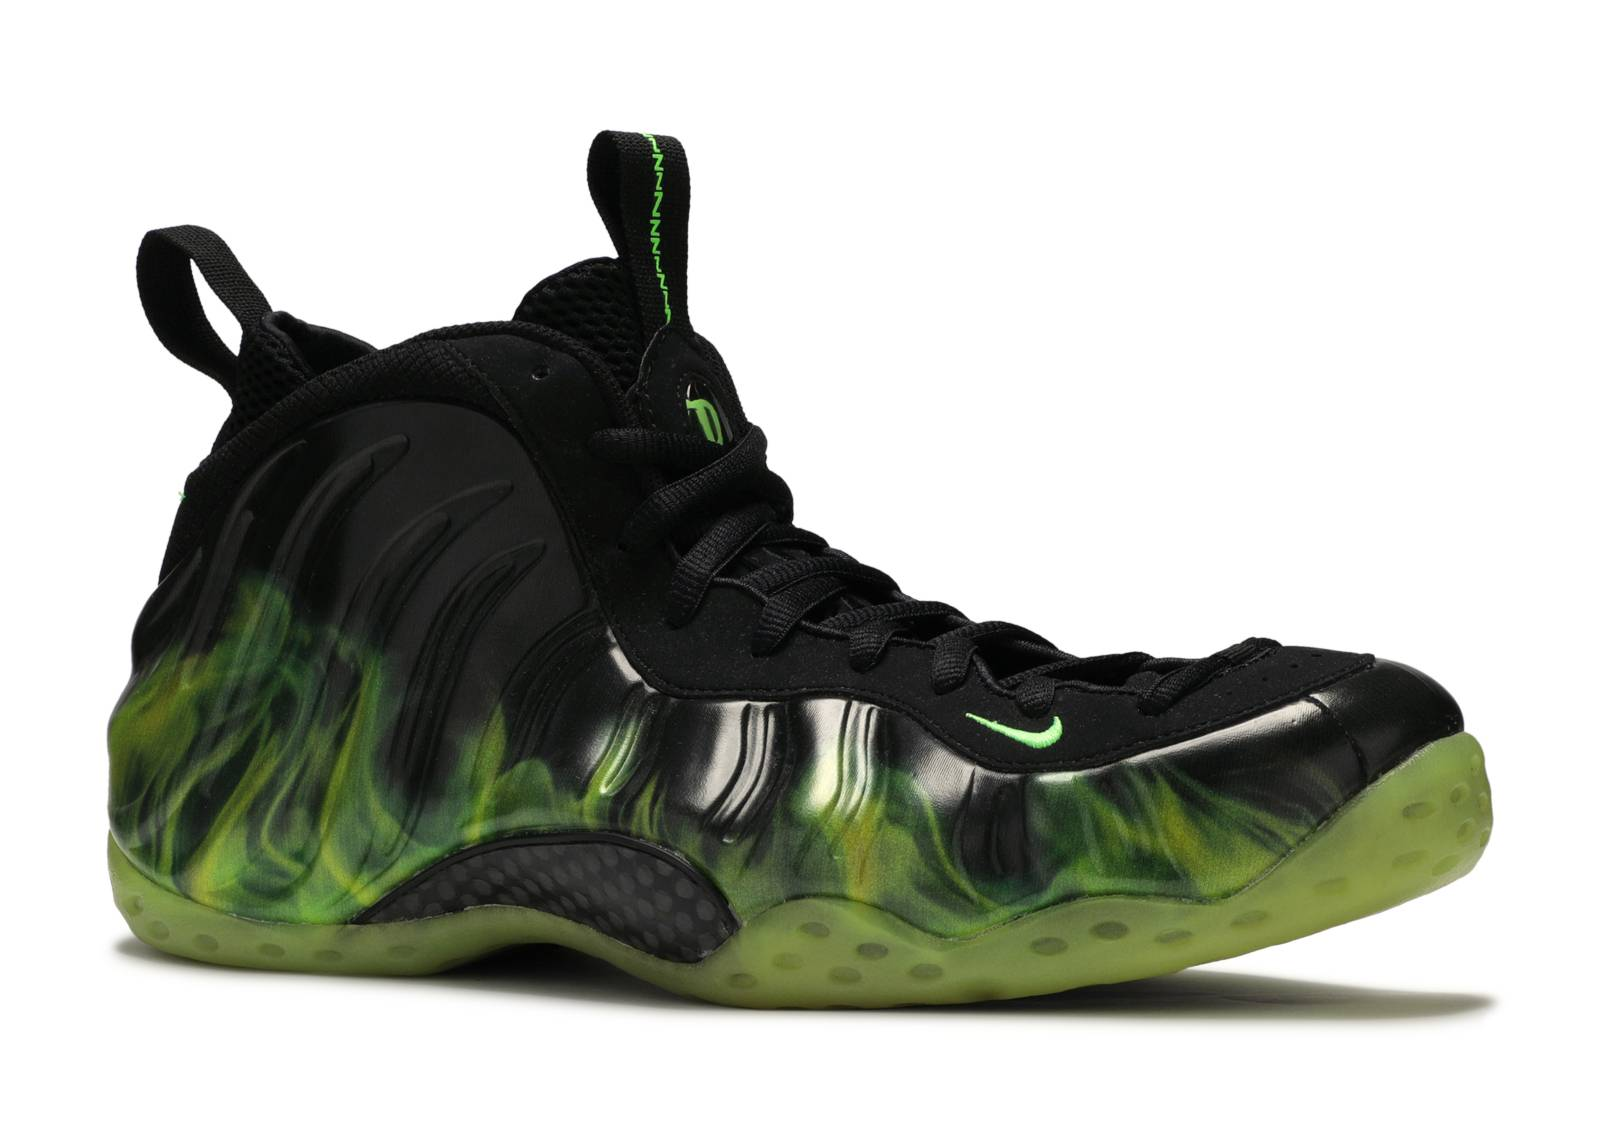 604aee45861 Air Foamposite One Paranorman